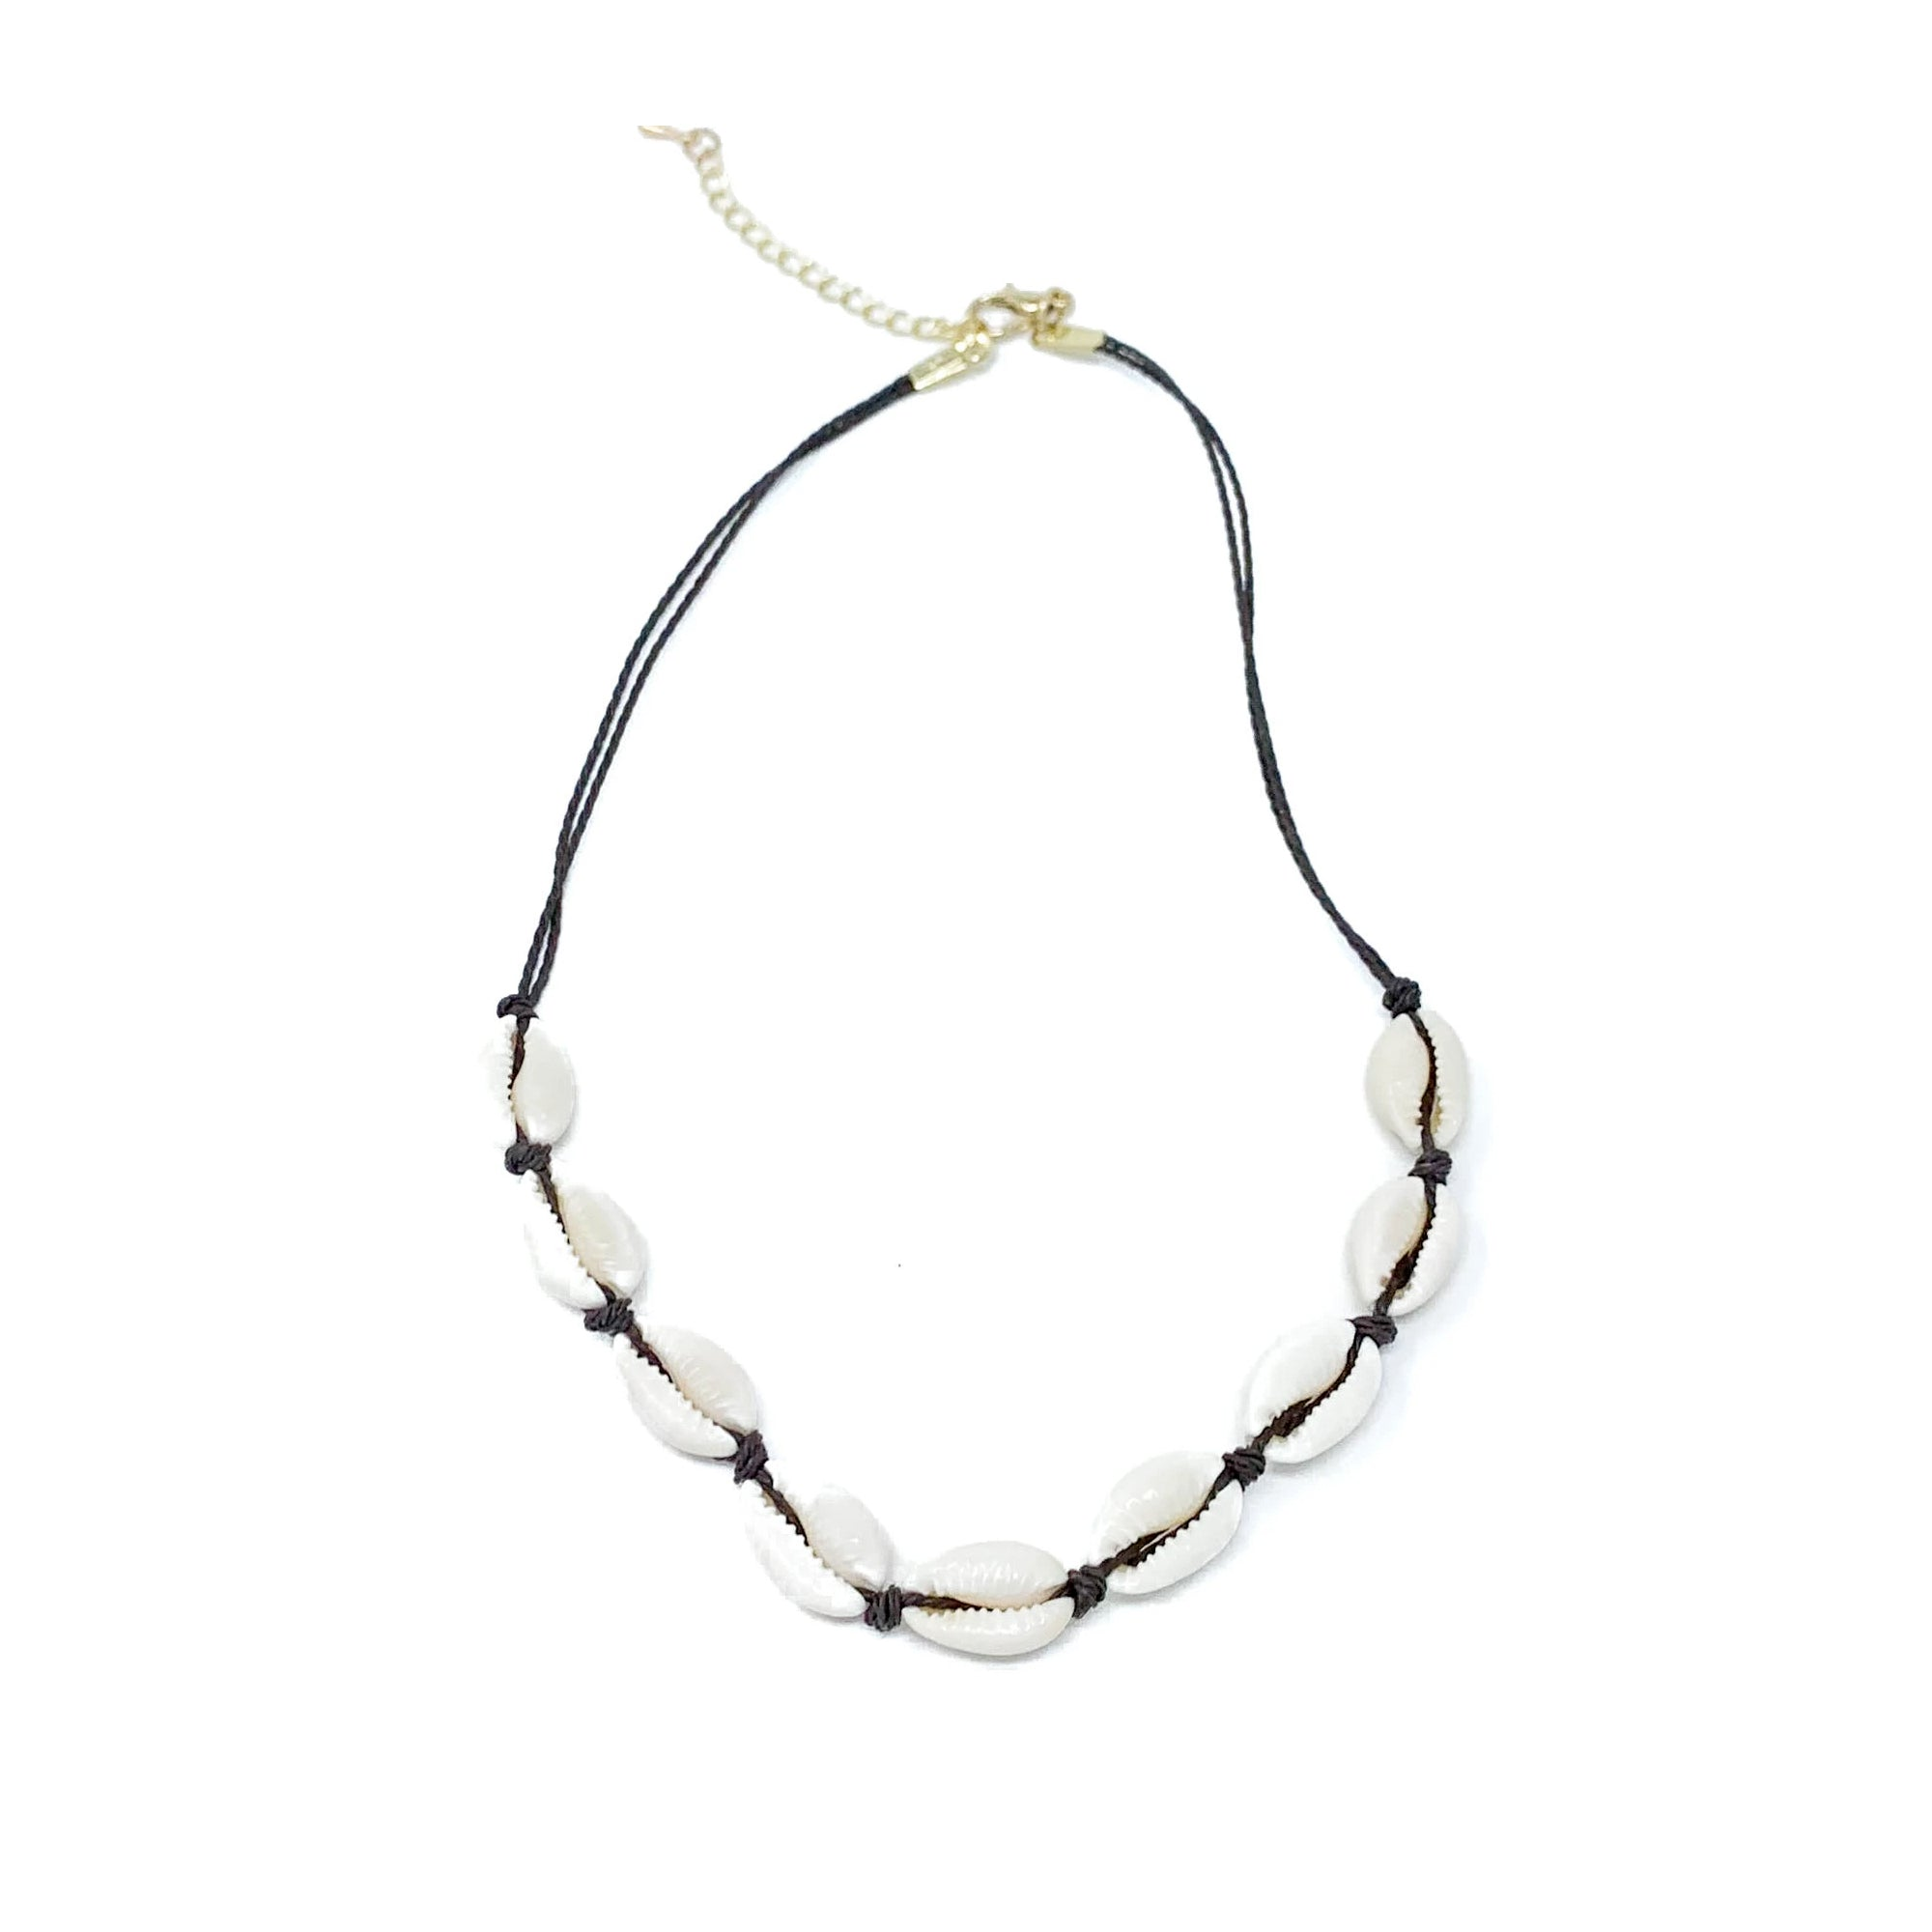 Charming Shark Cowrie Choker Necklace